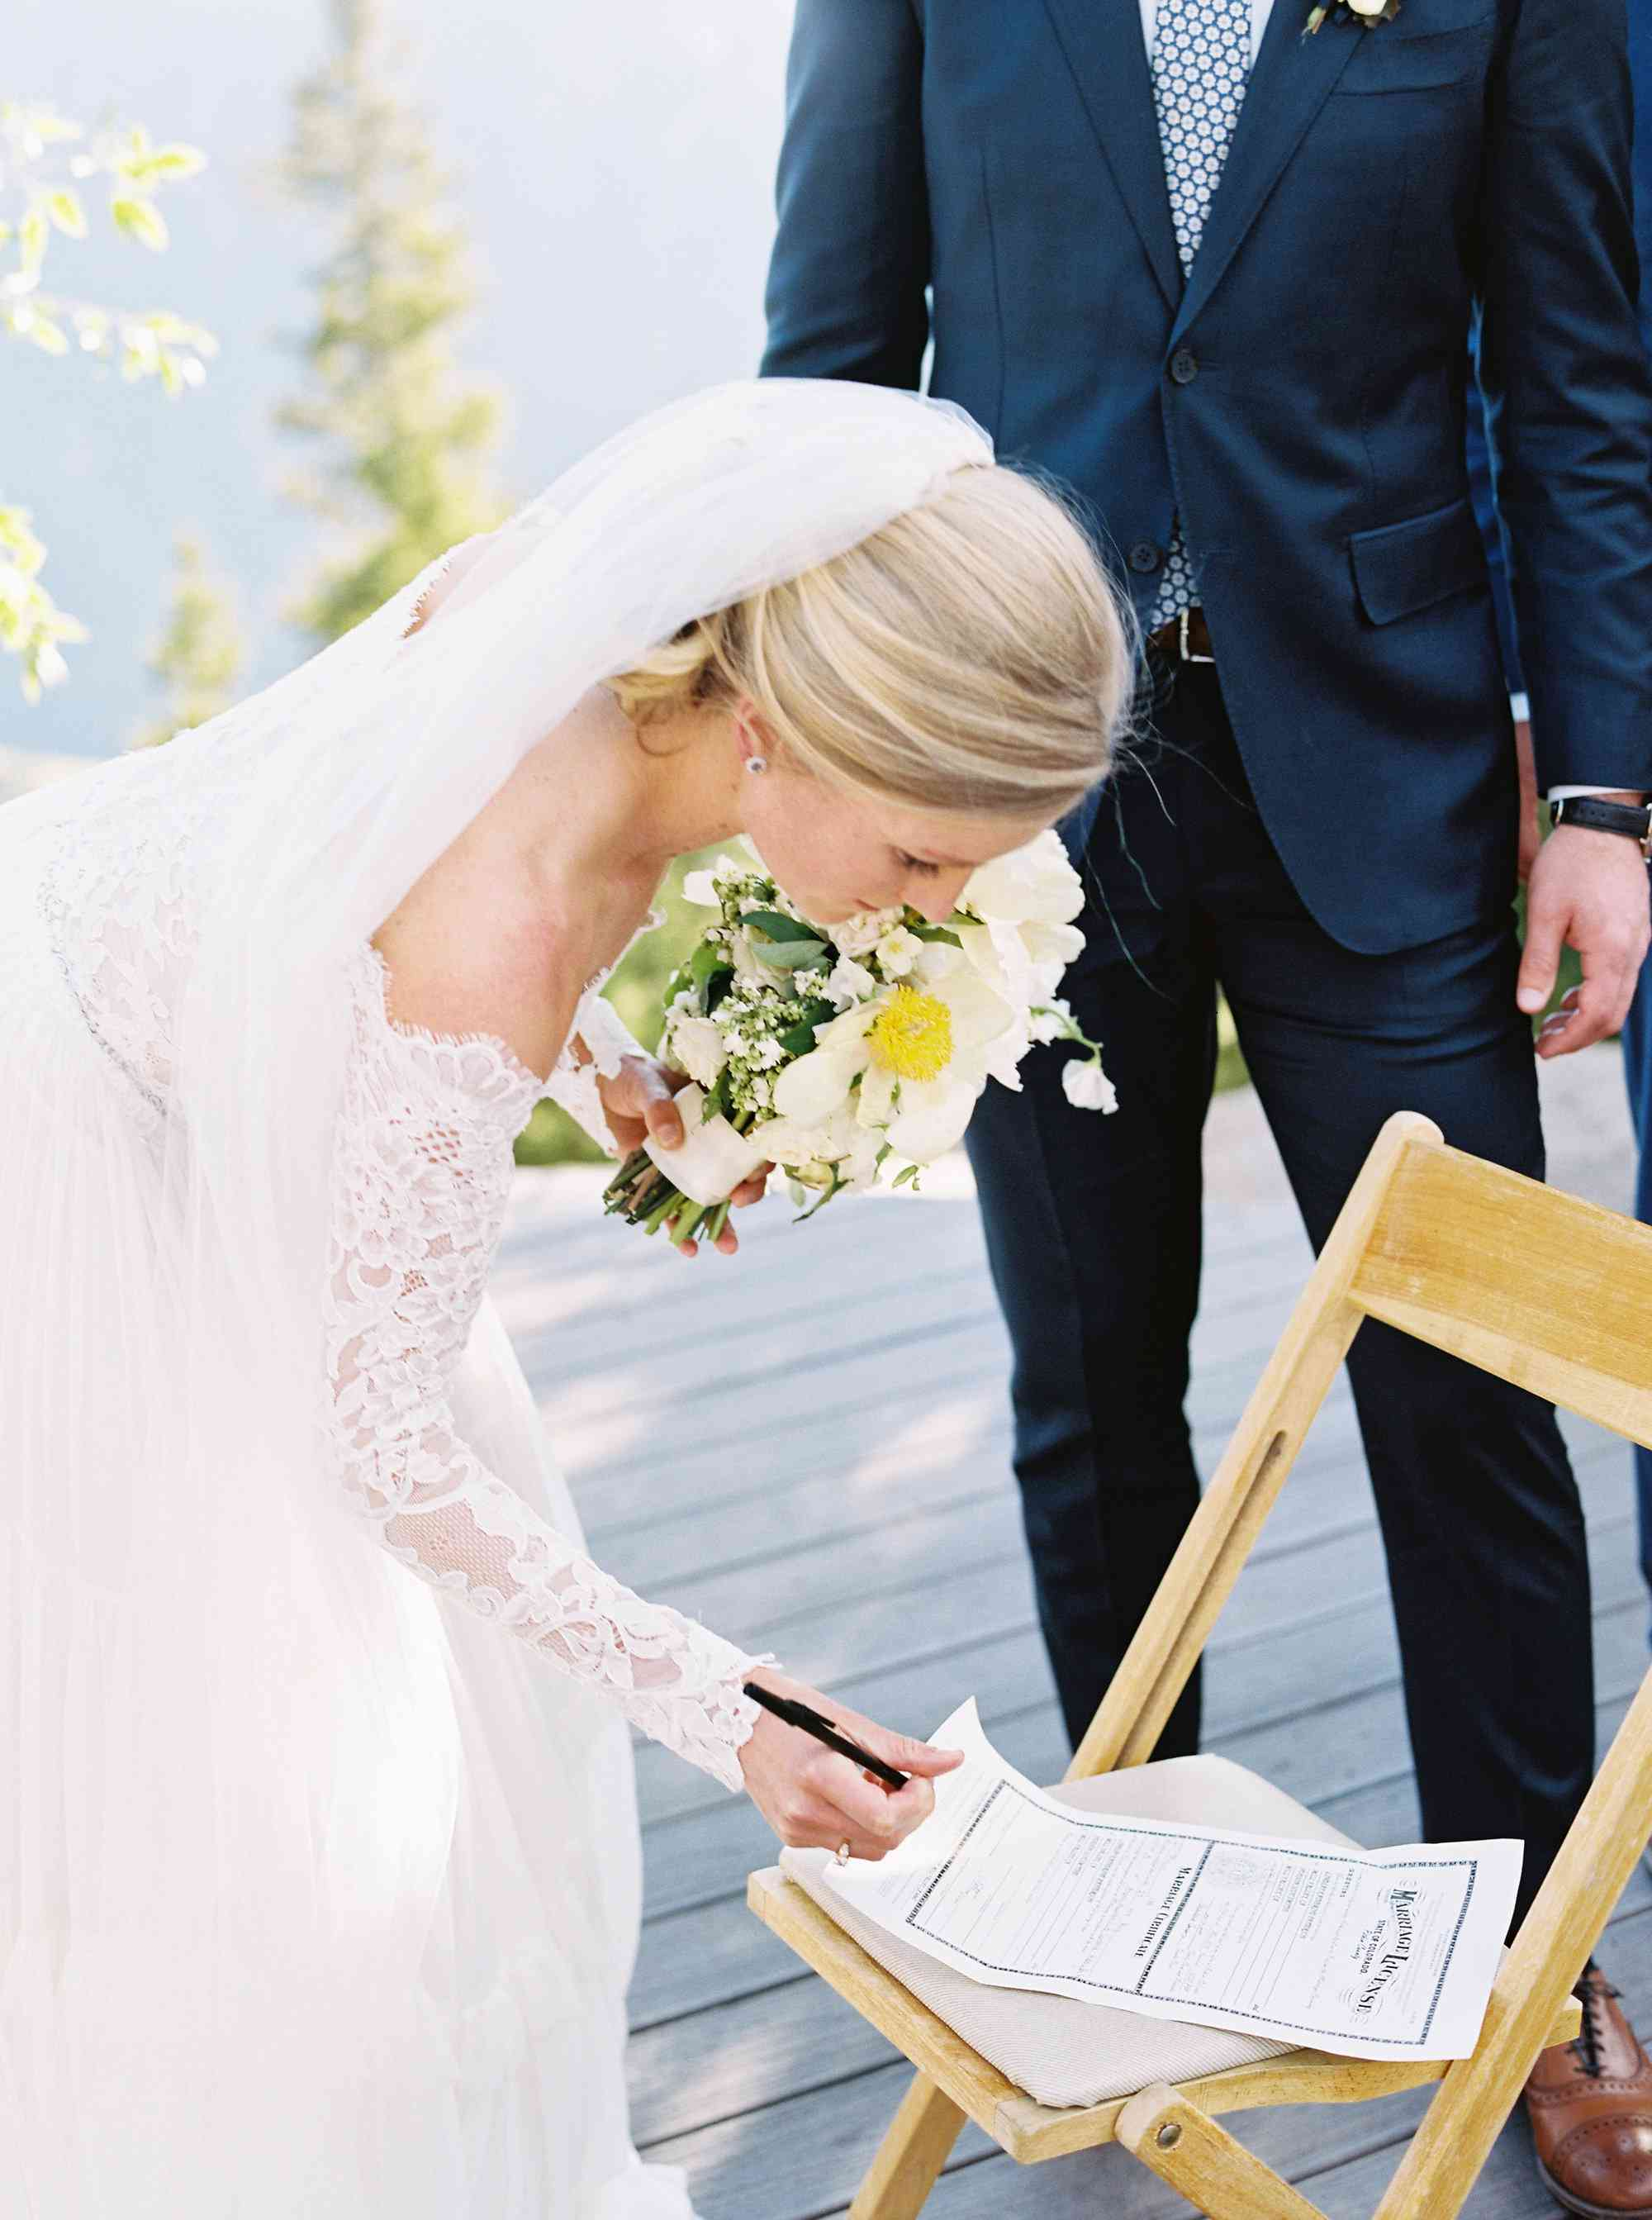 <p>signing marriage certificate</p><br><br>